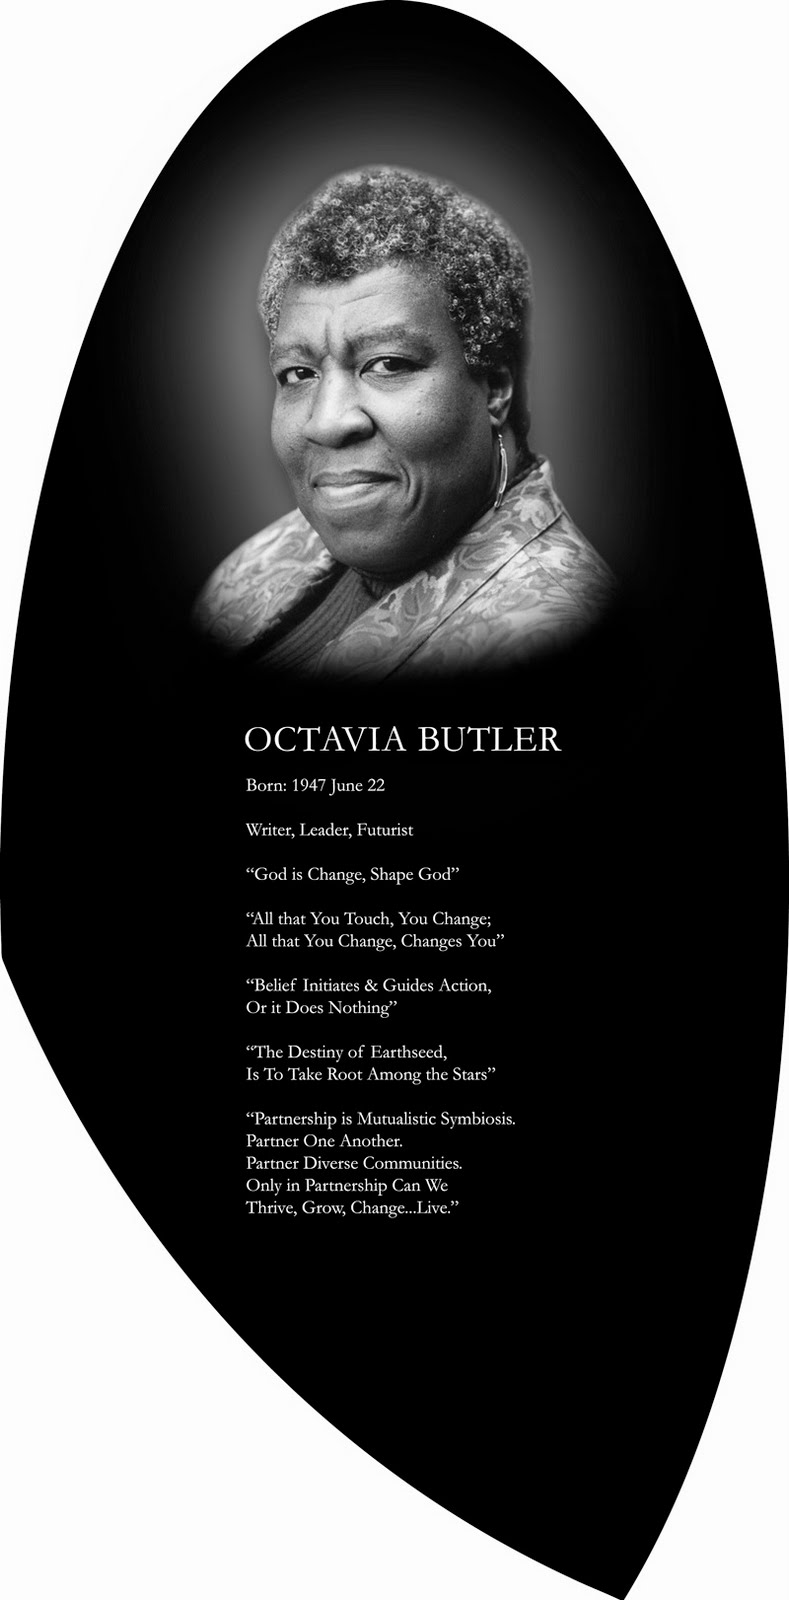 octavia butler kindred essay questions Original essay writing unemployment descriptive essays about a person the argumentative essay introduction high school creative process writing worksheets essay on harry potter escape room referencing essay example about myself essay mla citation kindred octavia butler advertising essay example english speech.